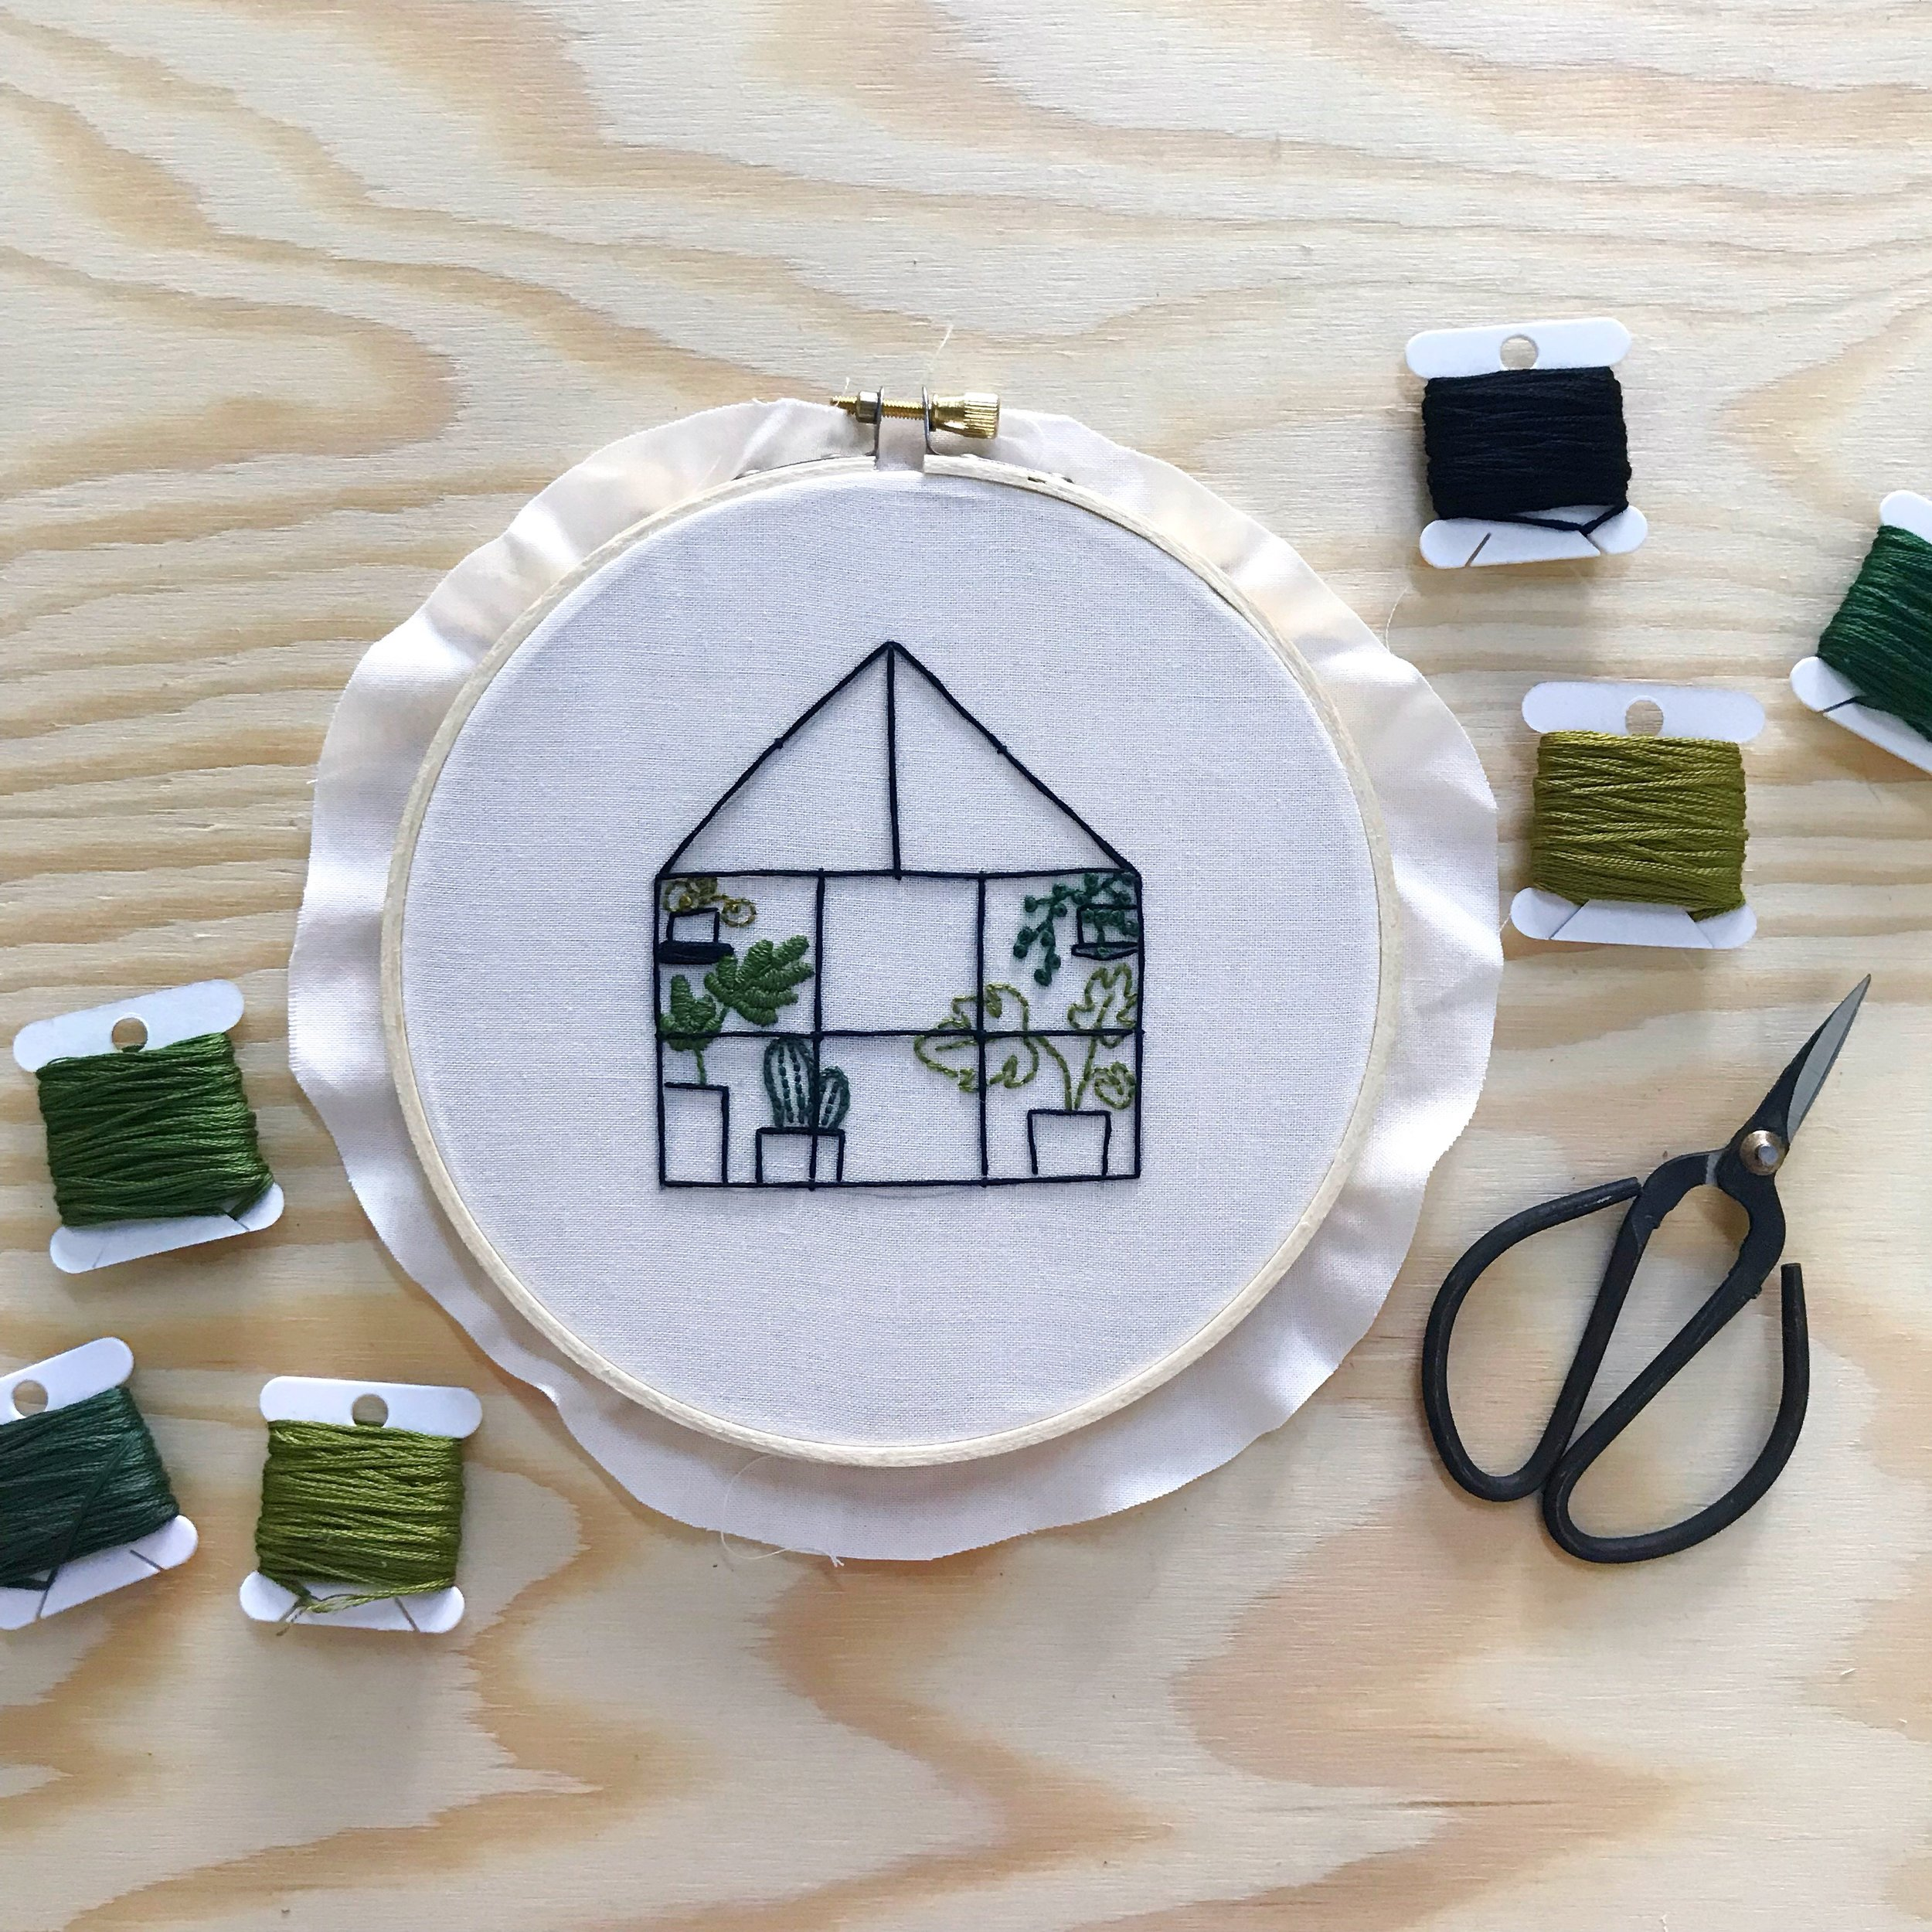 papercraftpantry-workshops-beginners-hand-embroidery.jpg